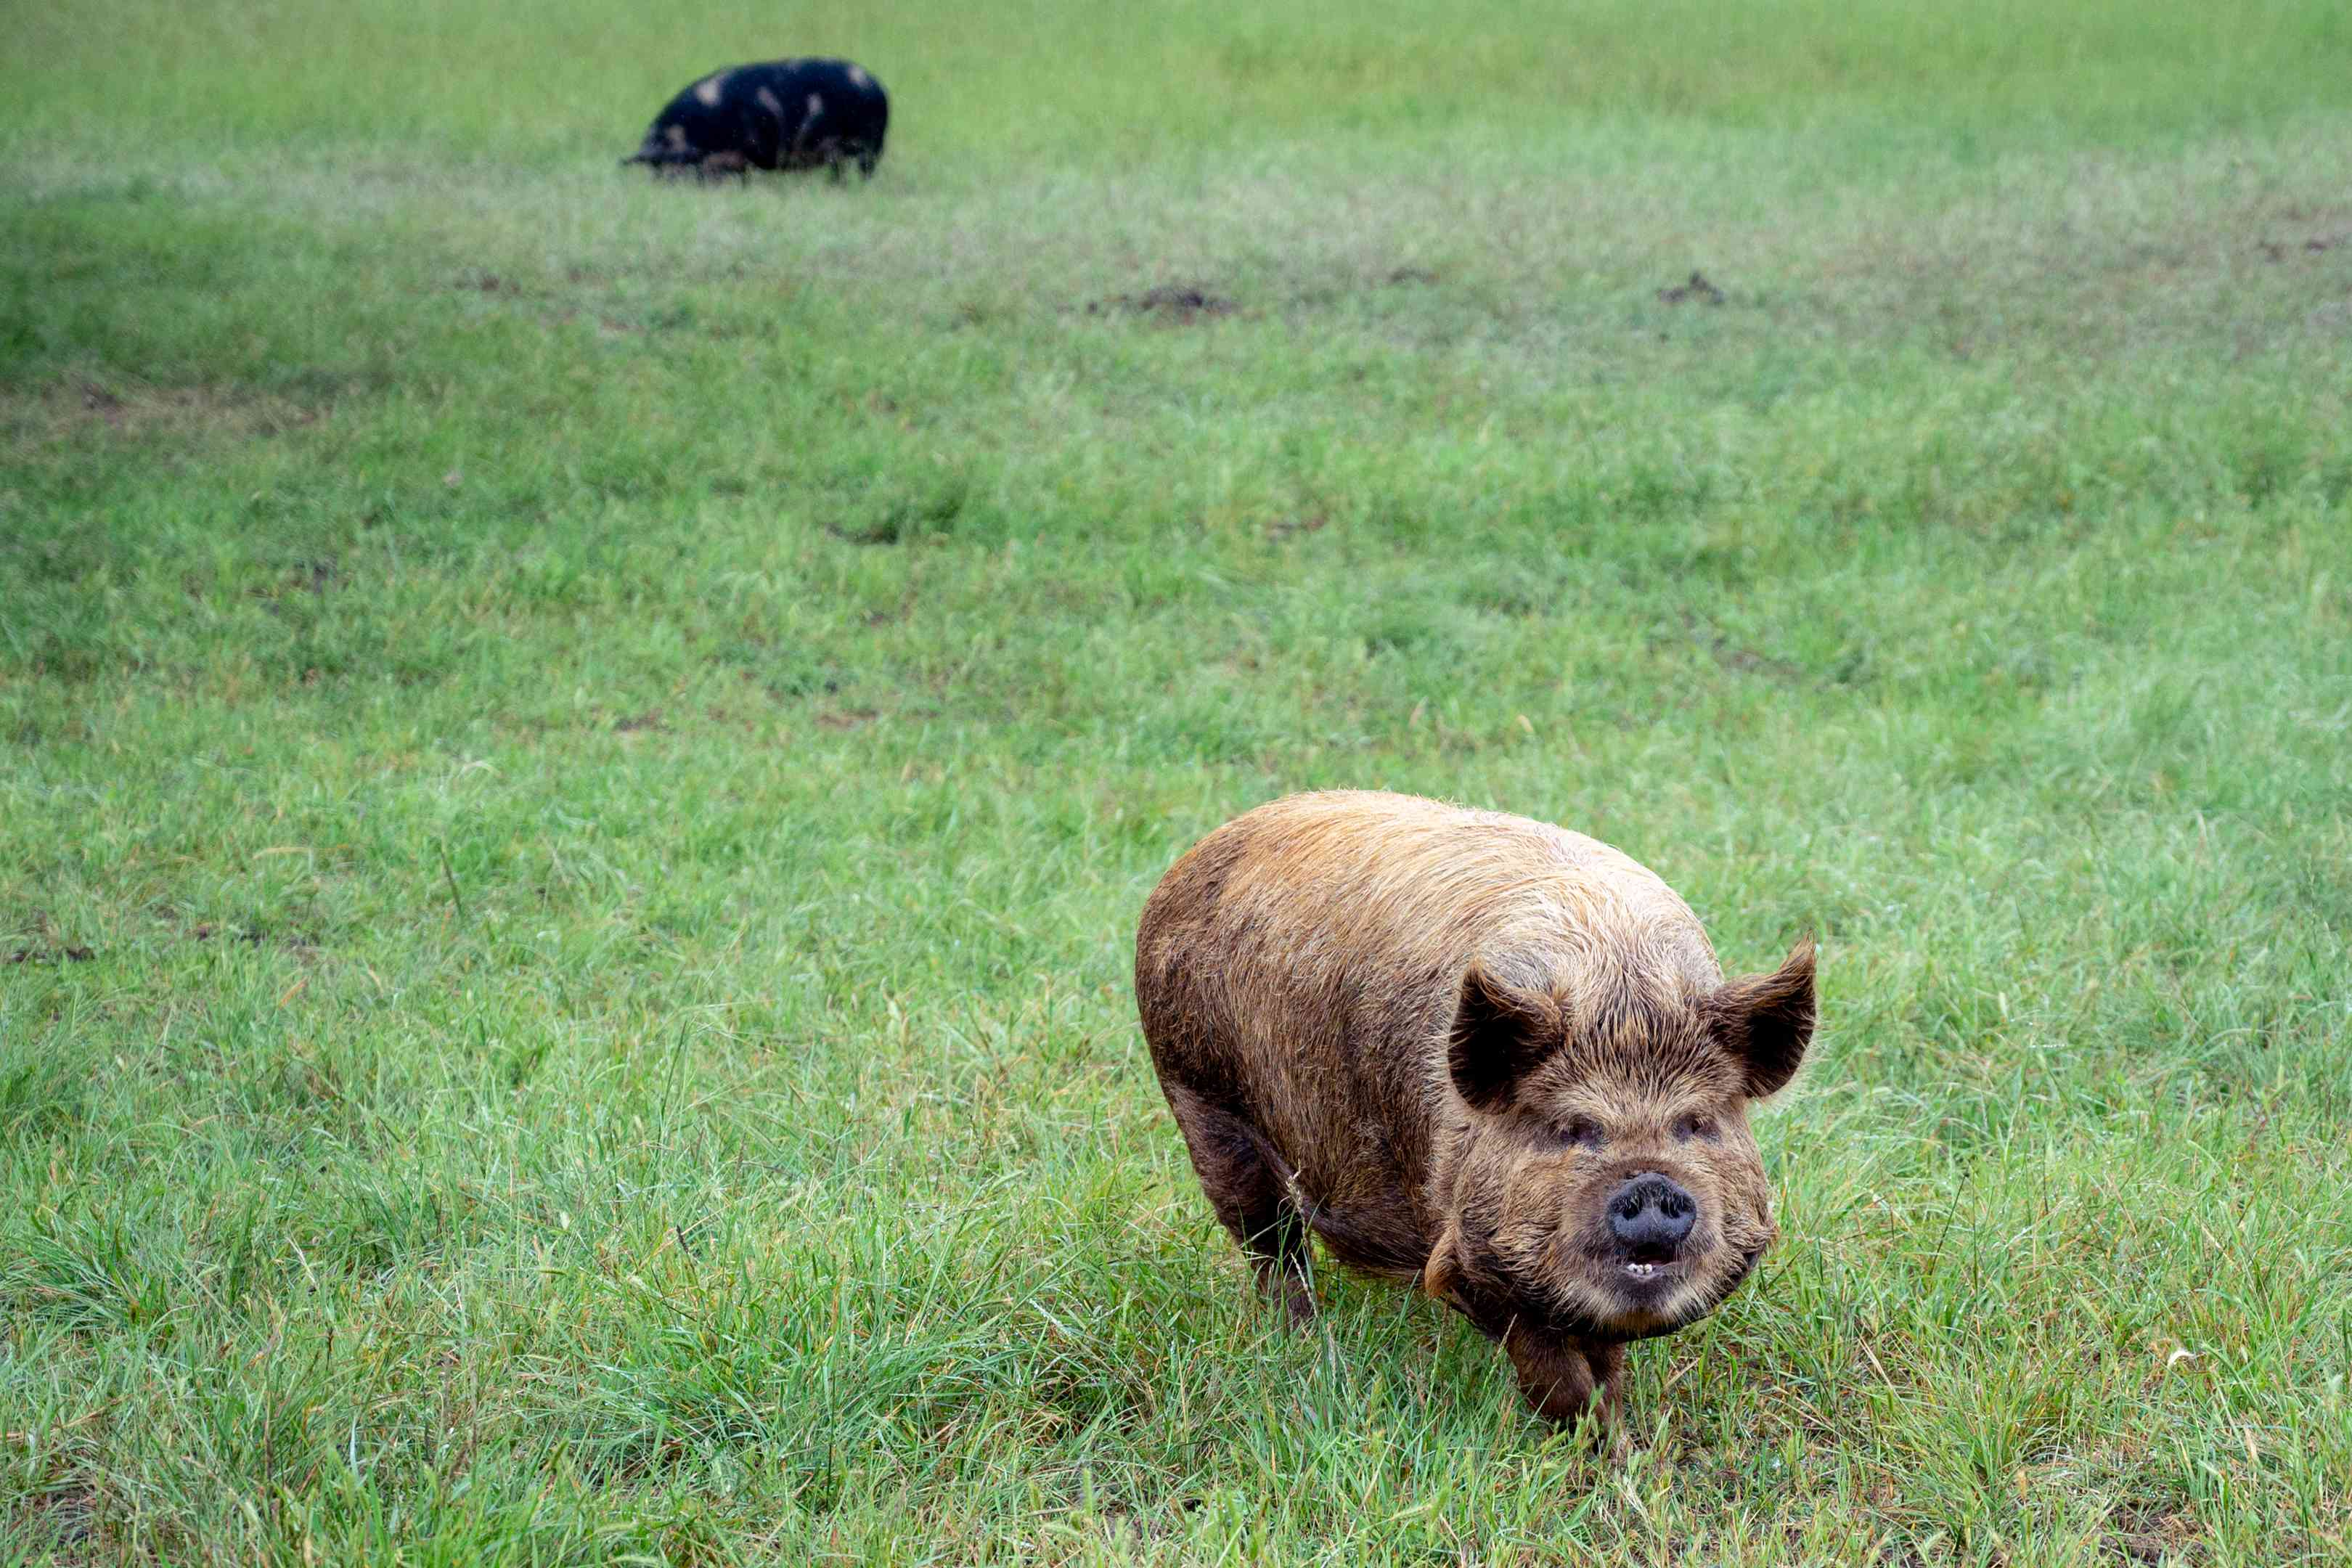 large scruffy brown pig waddles through open grass field with black pig in background